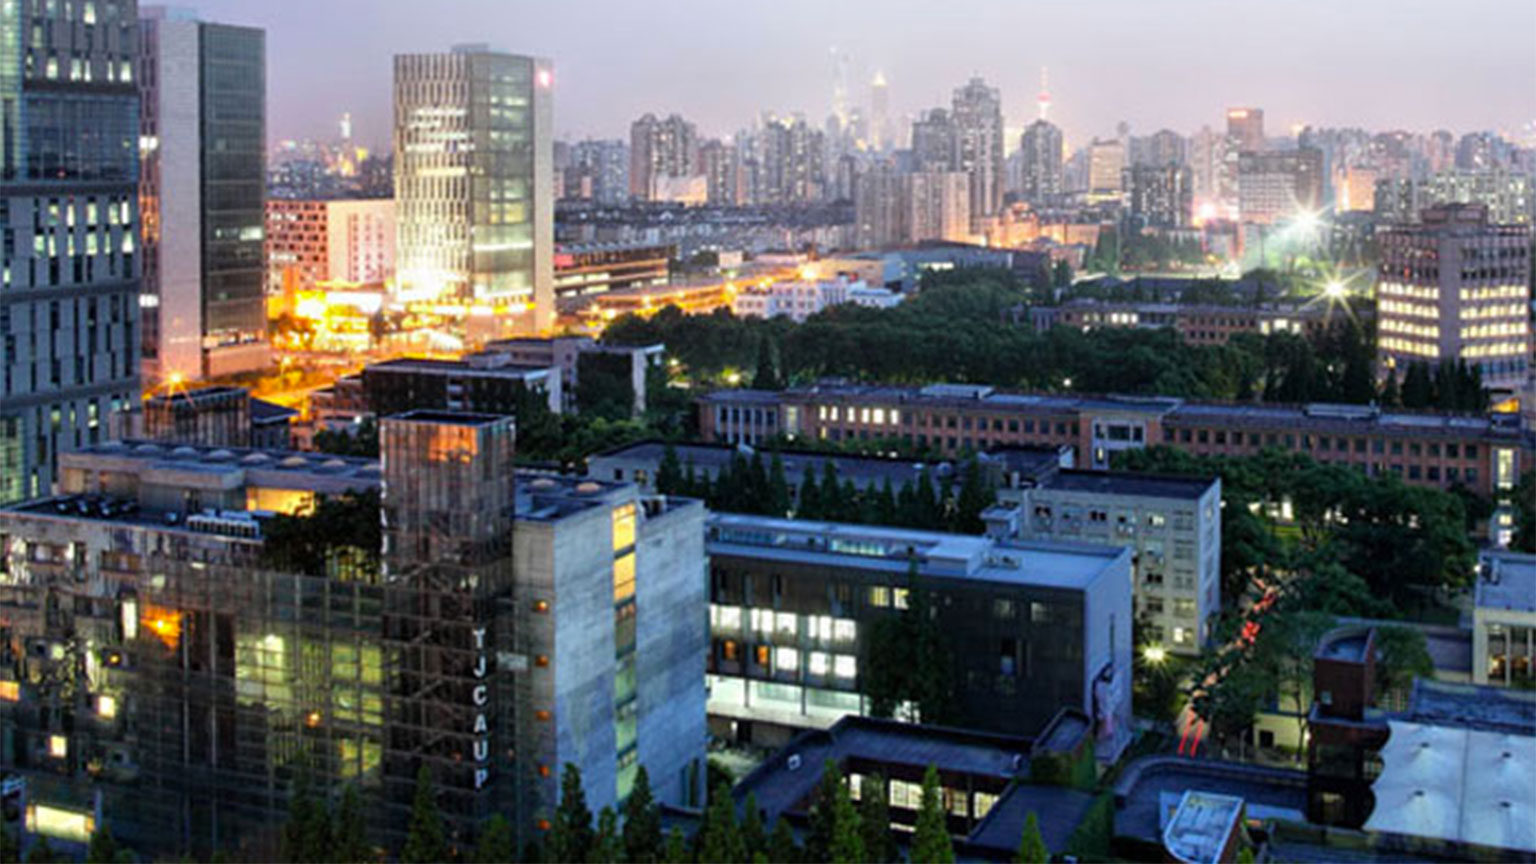 A photo of Tongee University in China, at night.